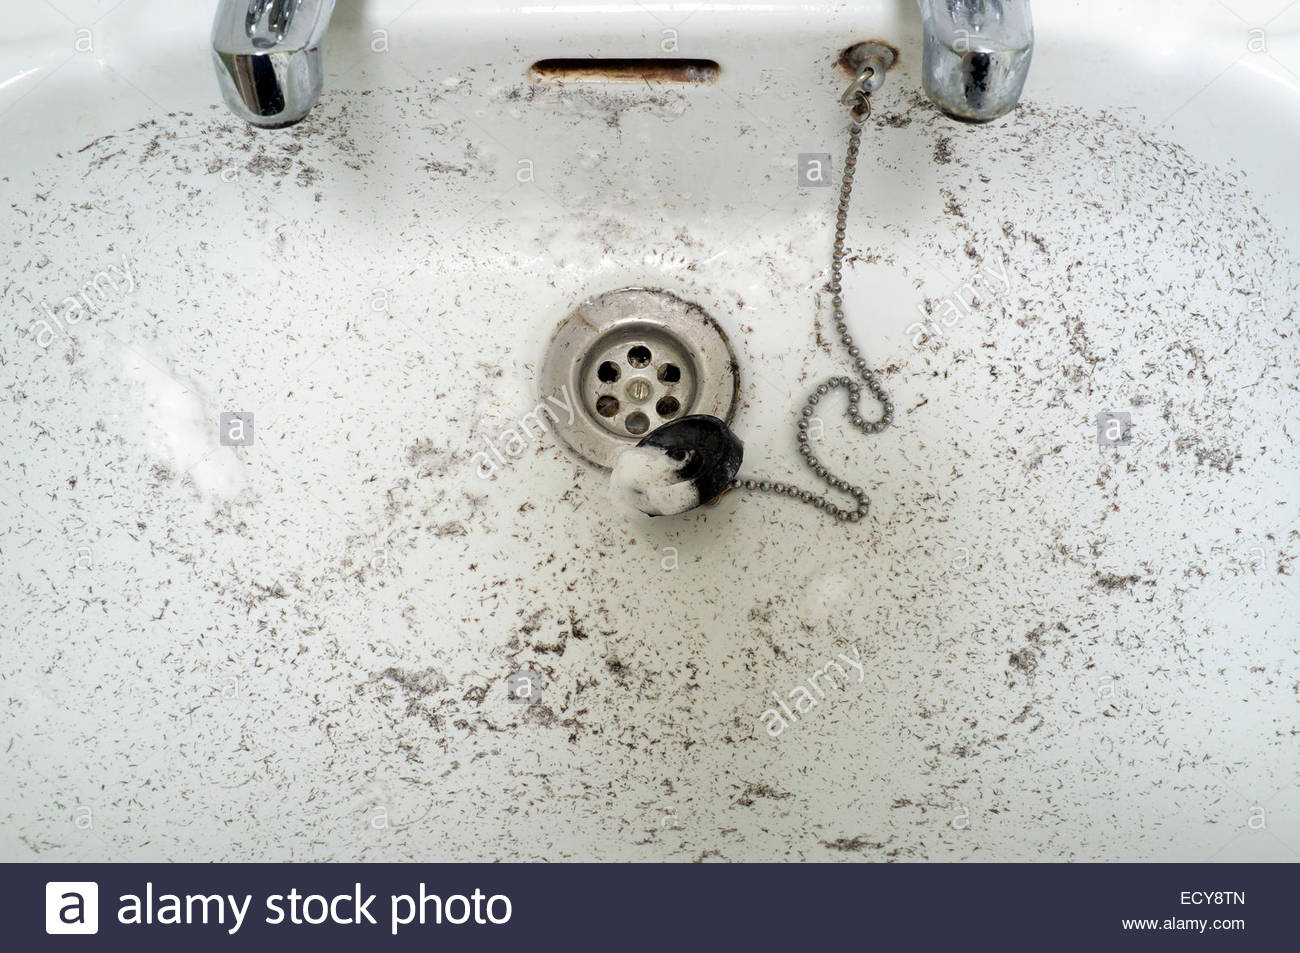 Dirty bathroom sink after a male has had a wet shave of their face, UK. - Stock Image